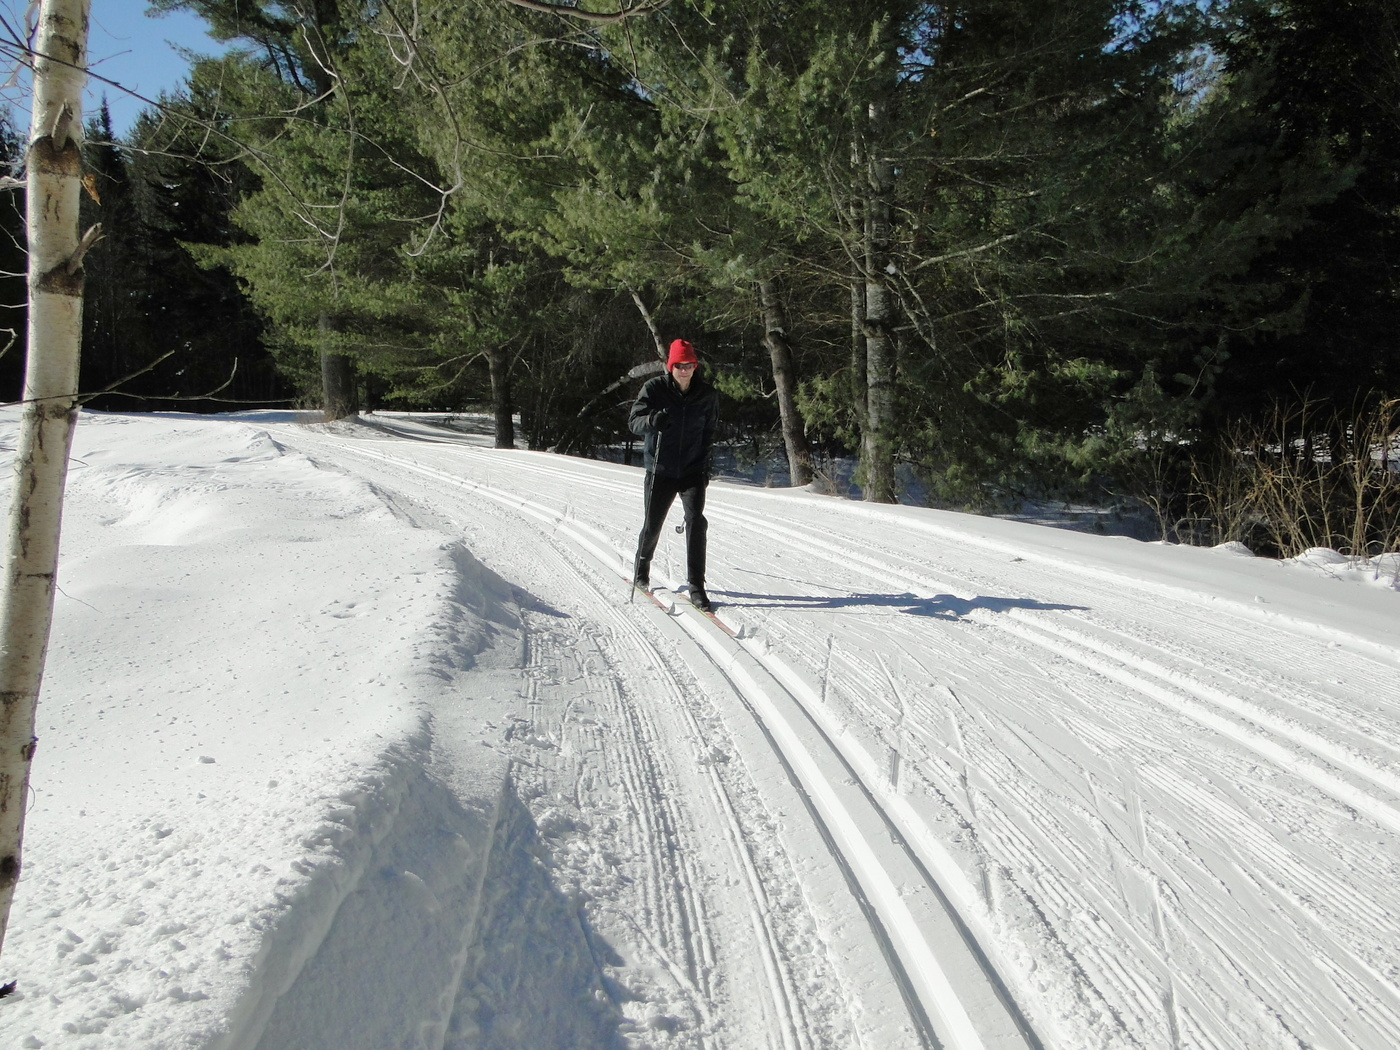 north country at work: running a nordic ski center in snowy benson